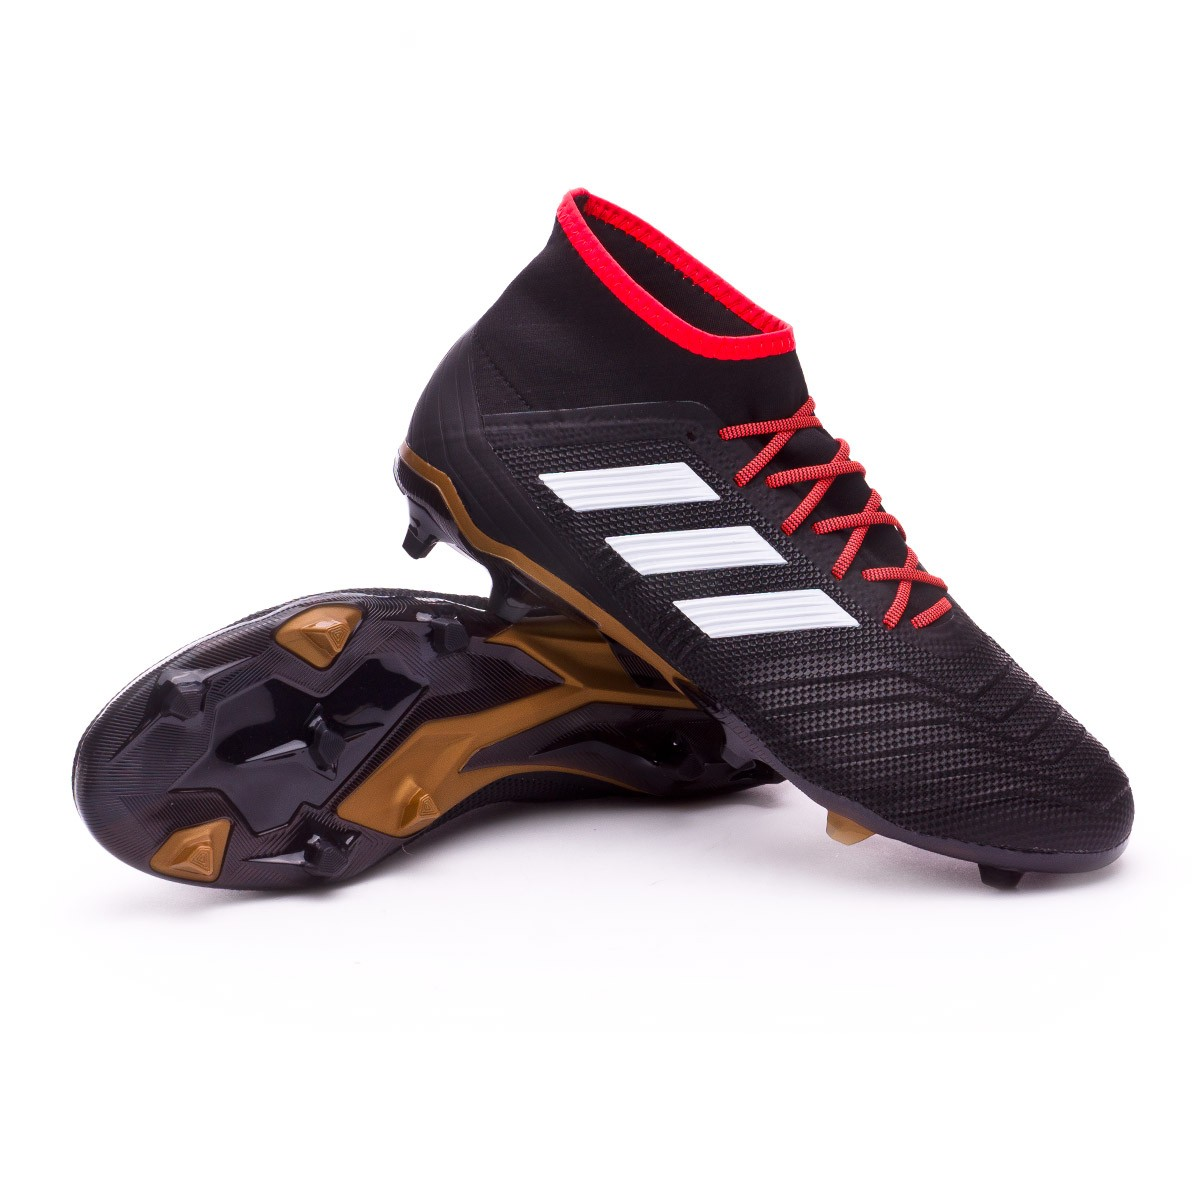 5a36126ab0e9 adidas Predator 18.2 FG Football Boots. Core black-White-Gold ...